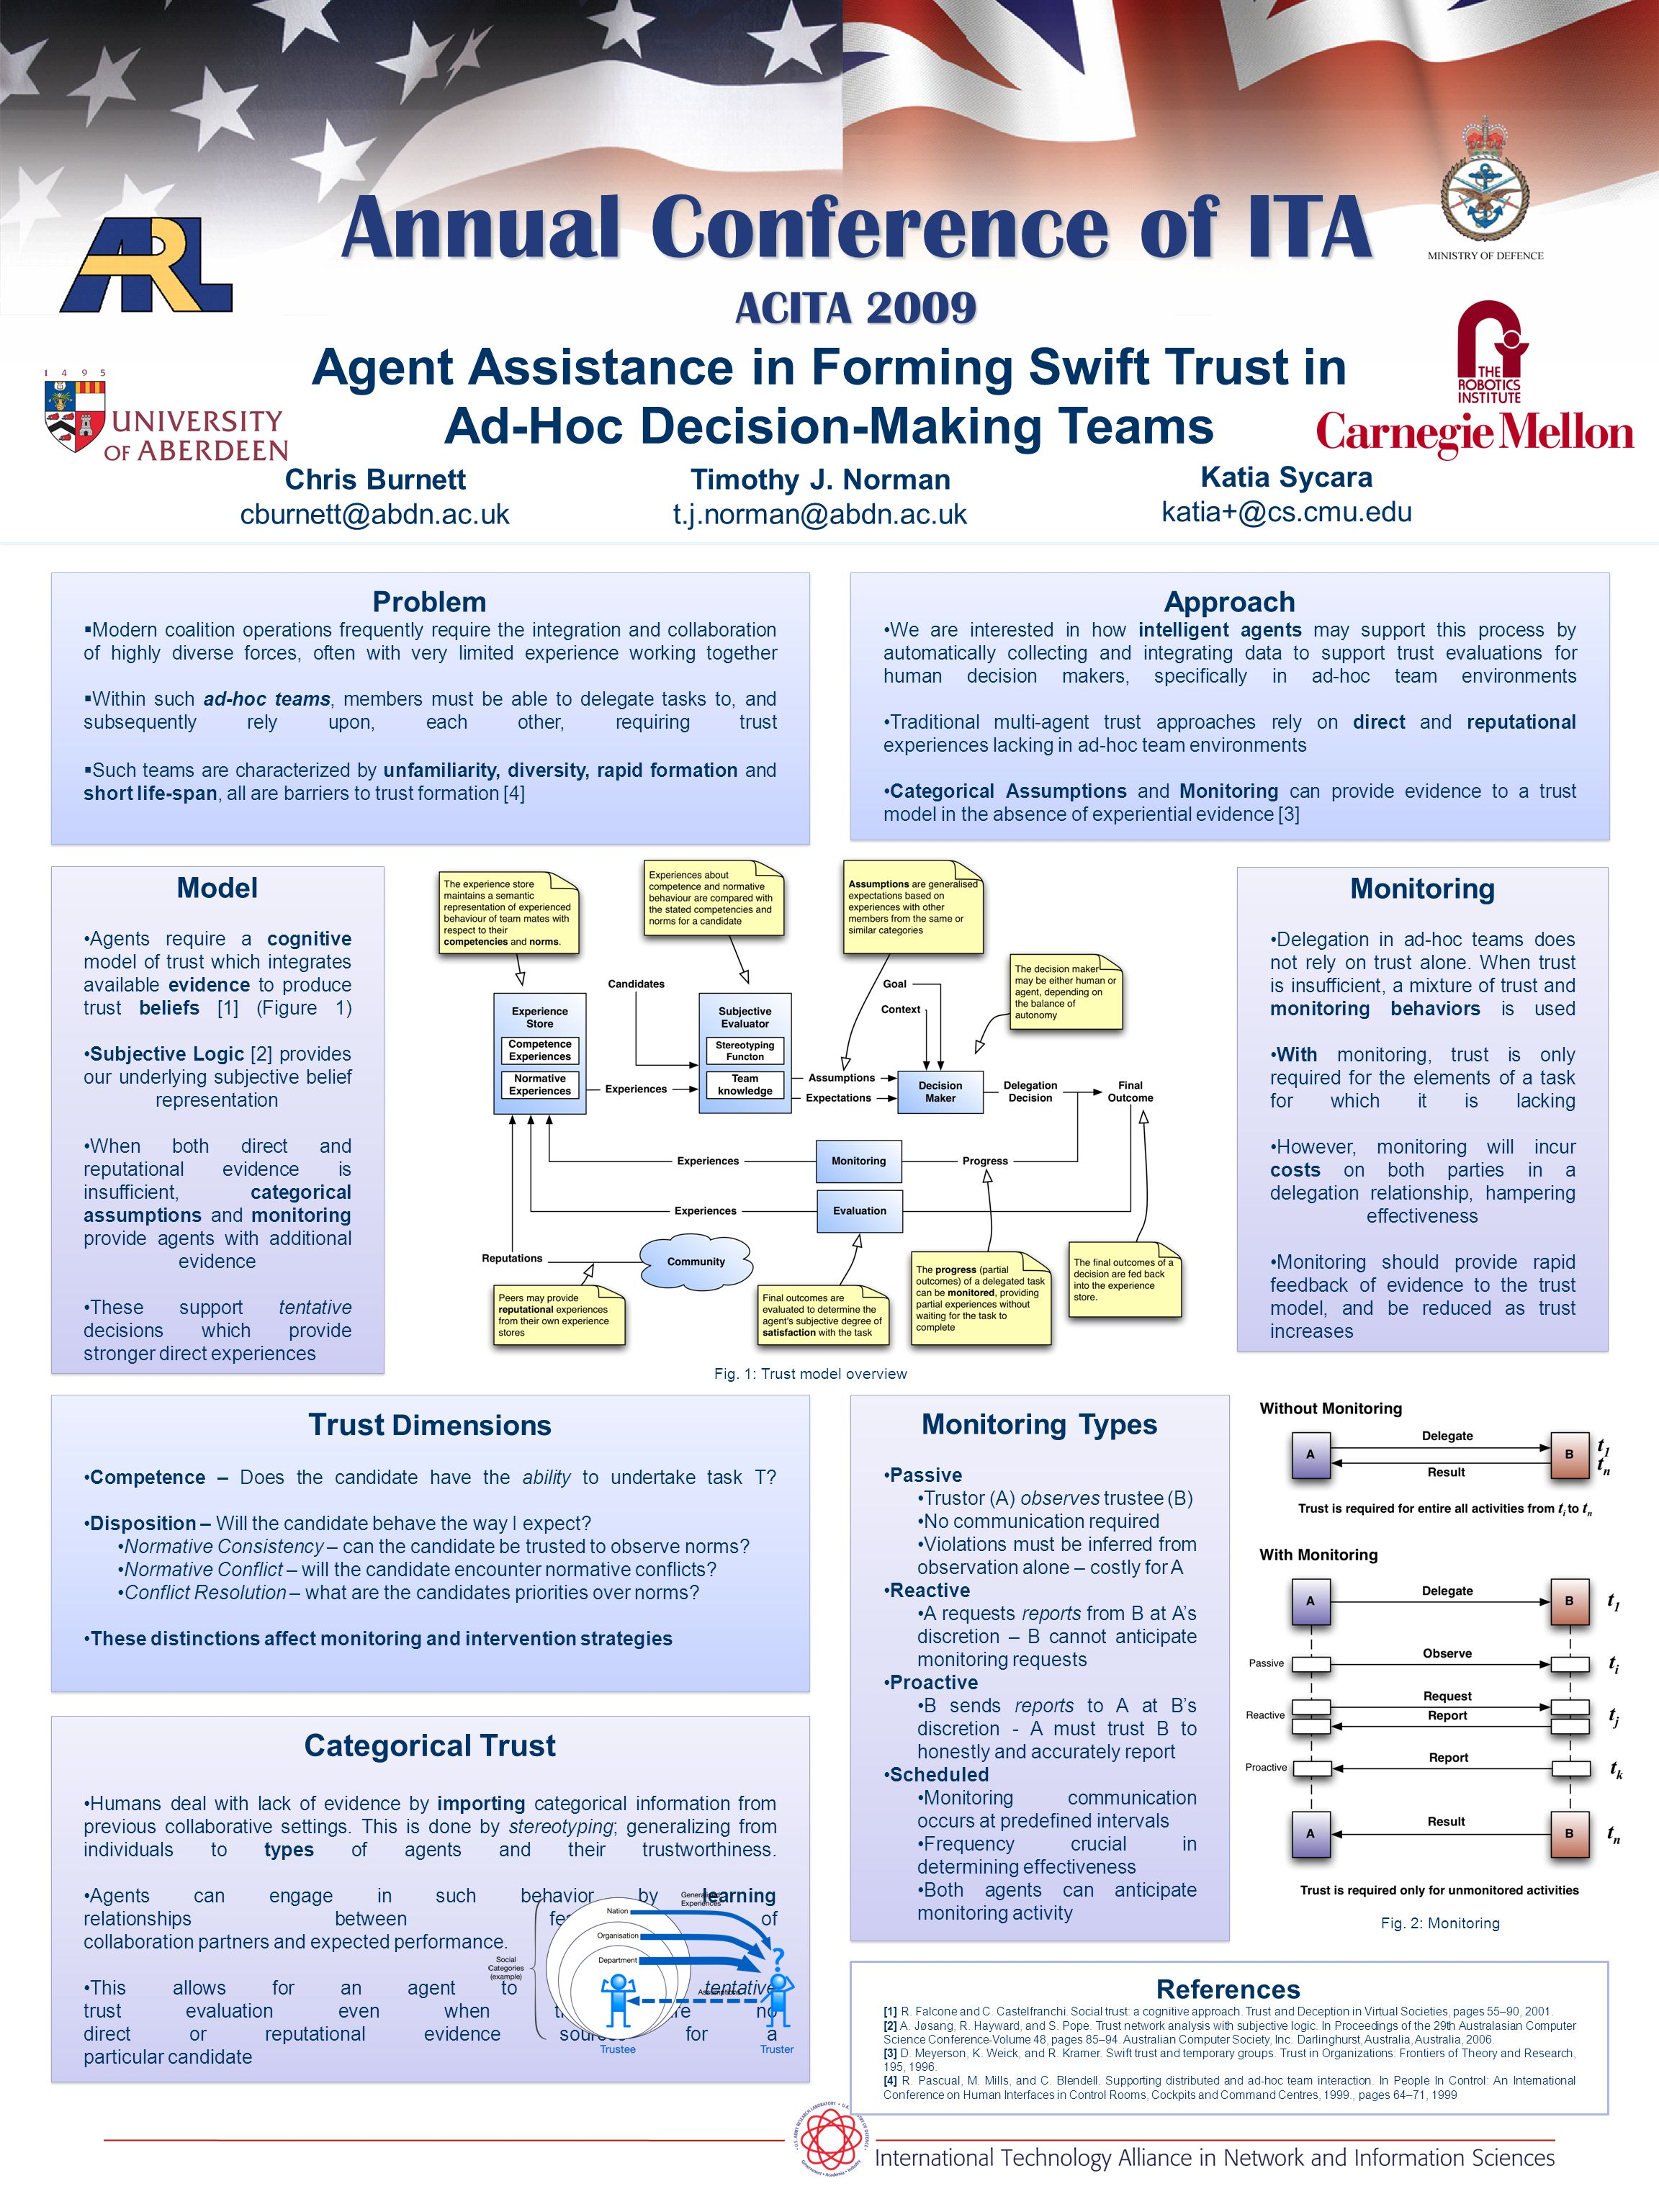 Annual Conference of ITA ACITA 2009 Agent Assistance in Forming Swift Trust in Ad-Hoc Decision-Making Teams Chris Burnett cburnett@abdn.ac.uk Timothy